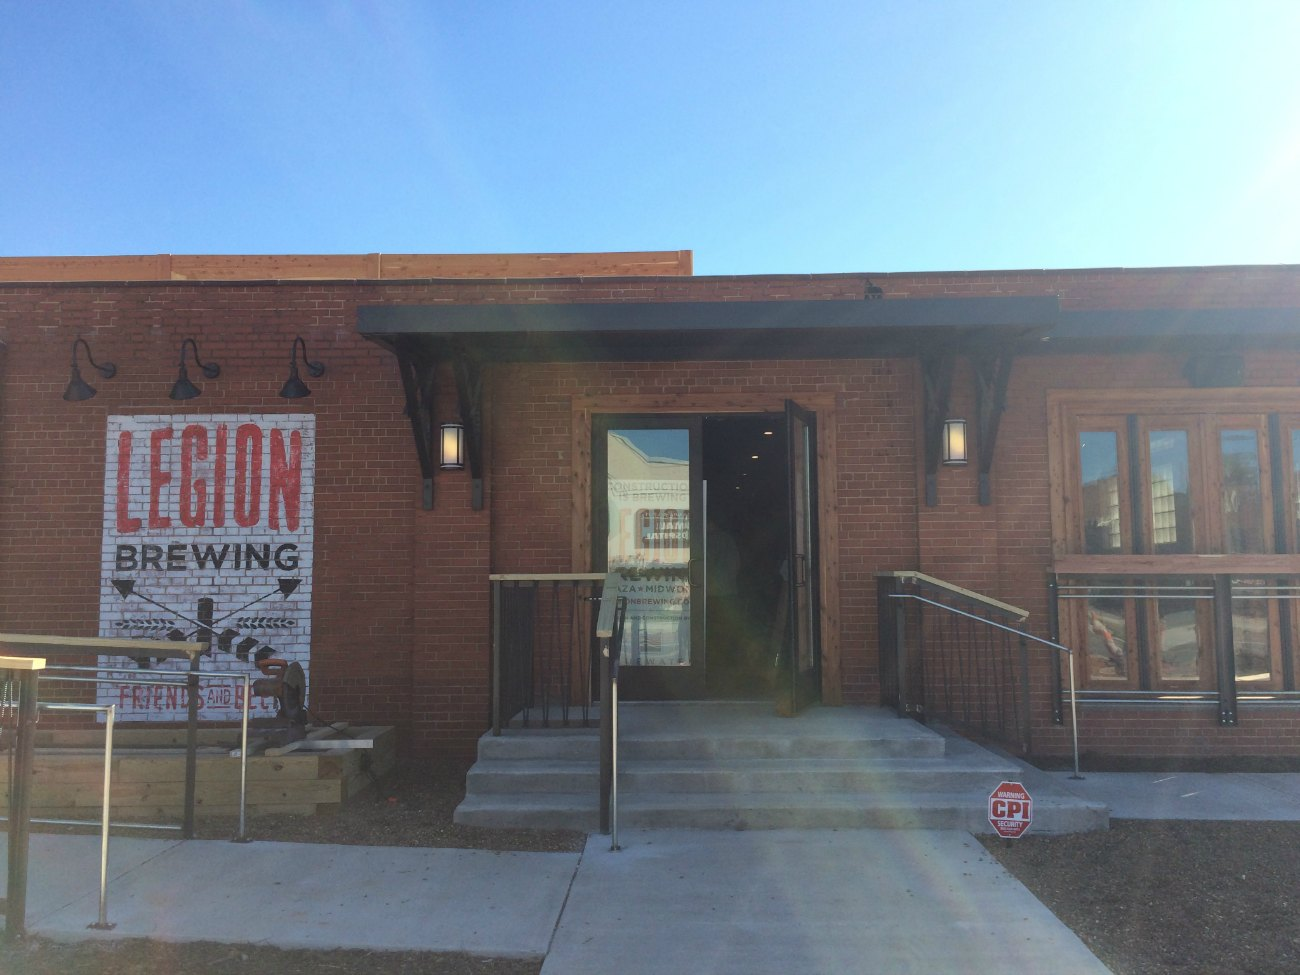 A look at Plaza Midwood's first brewery, Legion Brewing